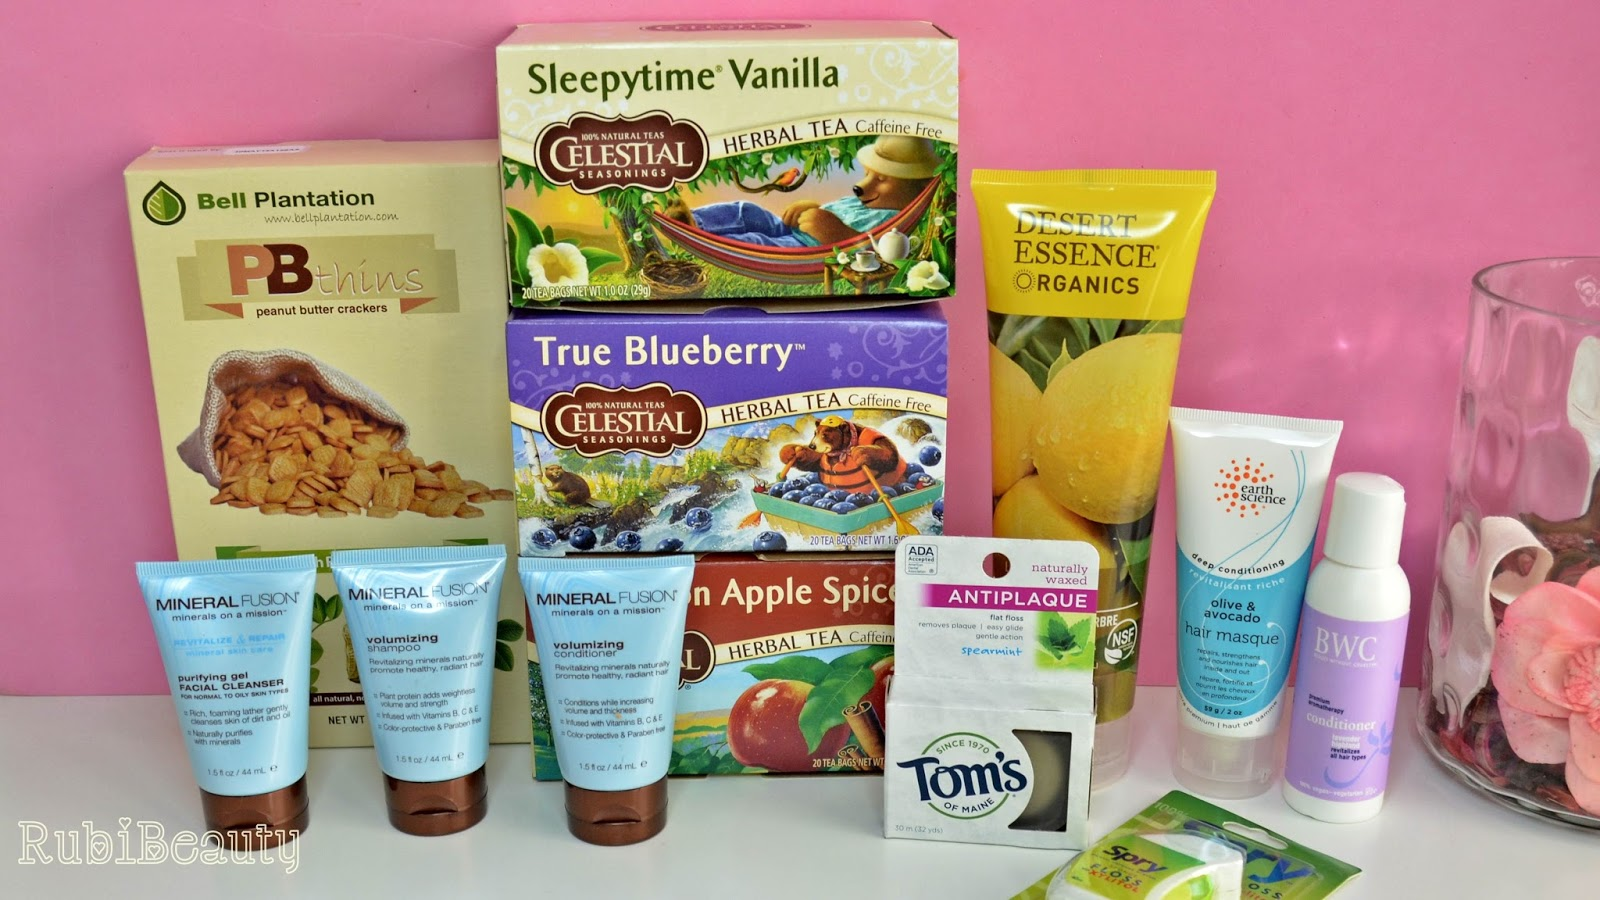 iherb haul review impresiones opinion compras